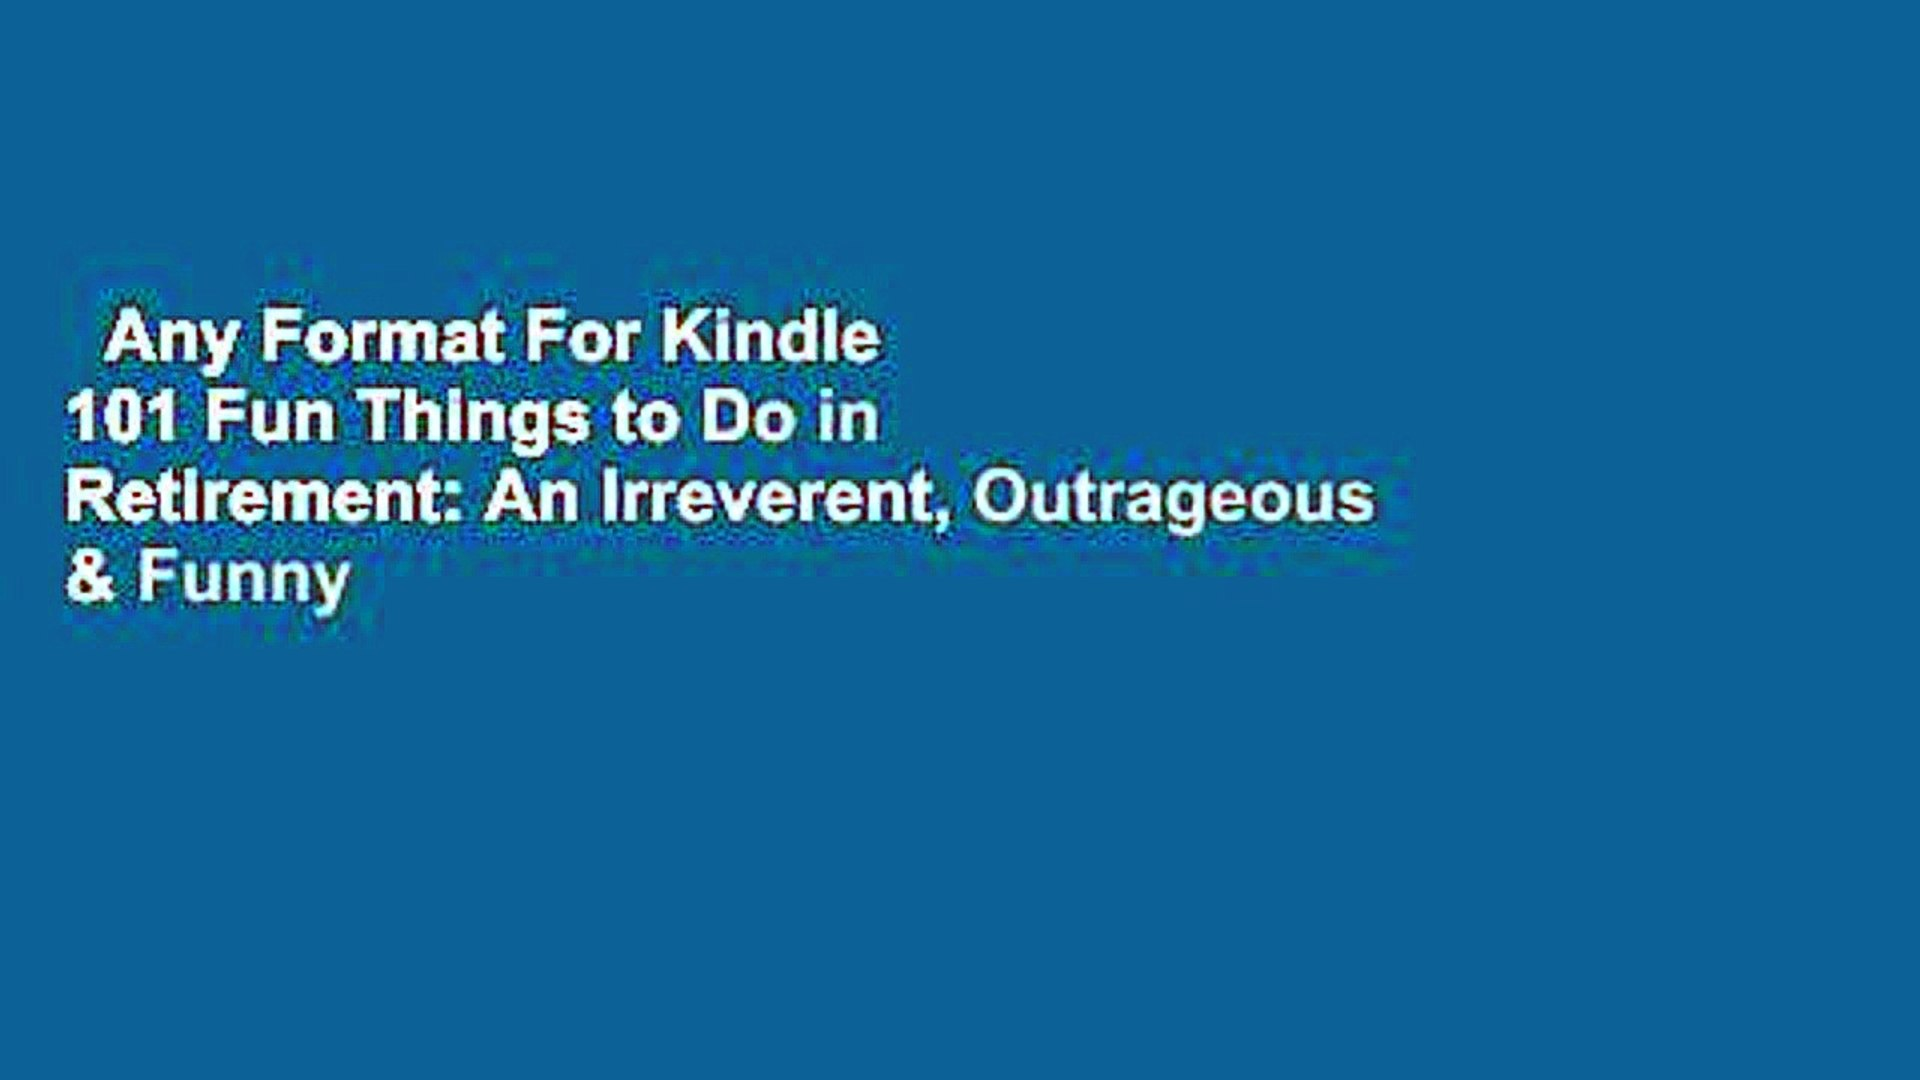 Any Format For Kindle 101 Fun Things to Do in Retirement: An Irreverent,  Outrageous & Funny